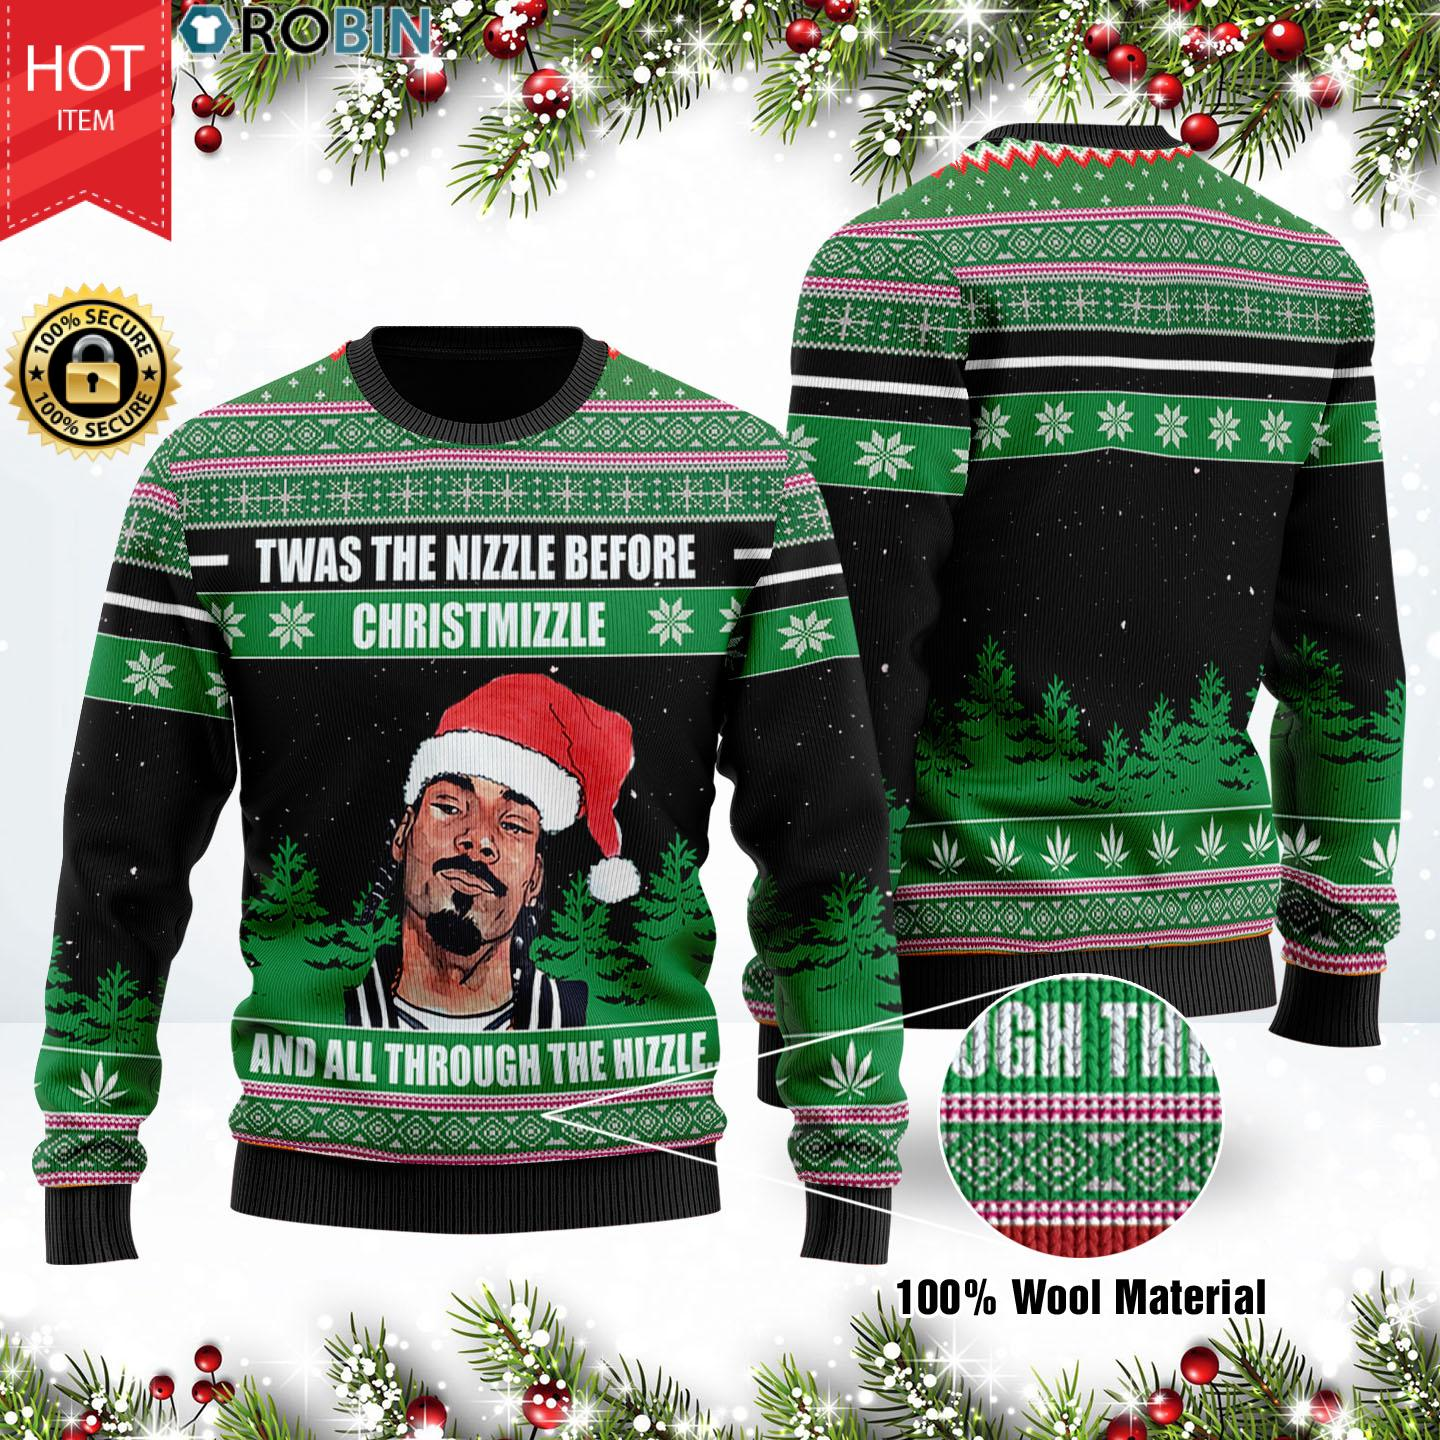 Snoop Dogg Twas The Nizzle Before Christmizzle And All Through The Hizzle Christmas Wool Ugly Sweater